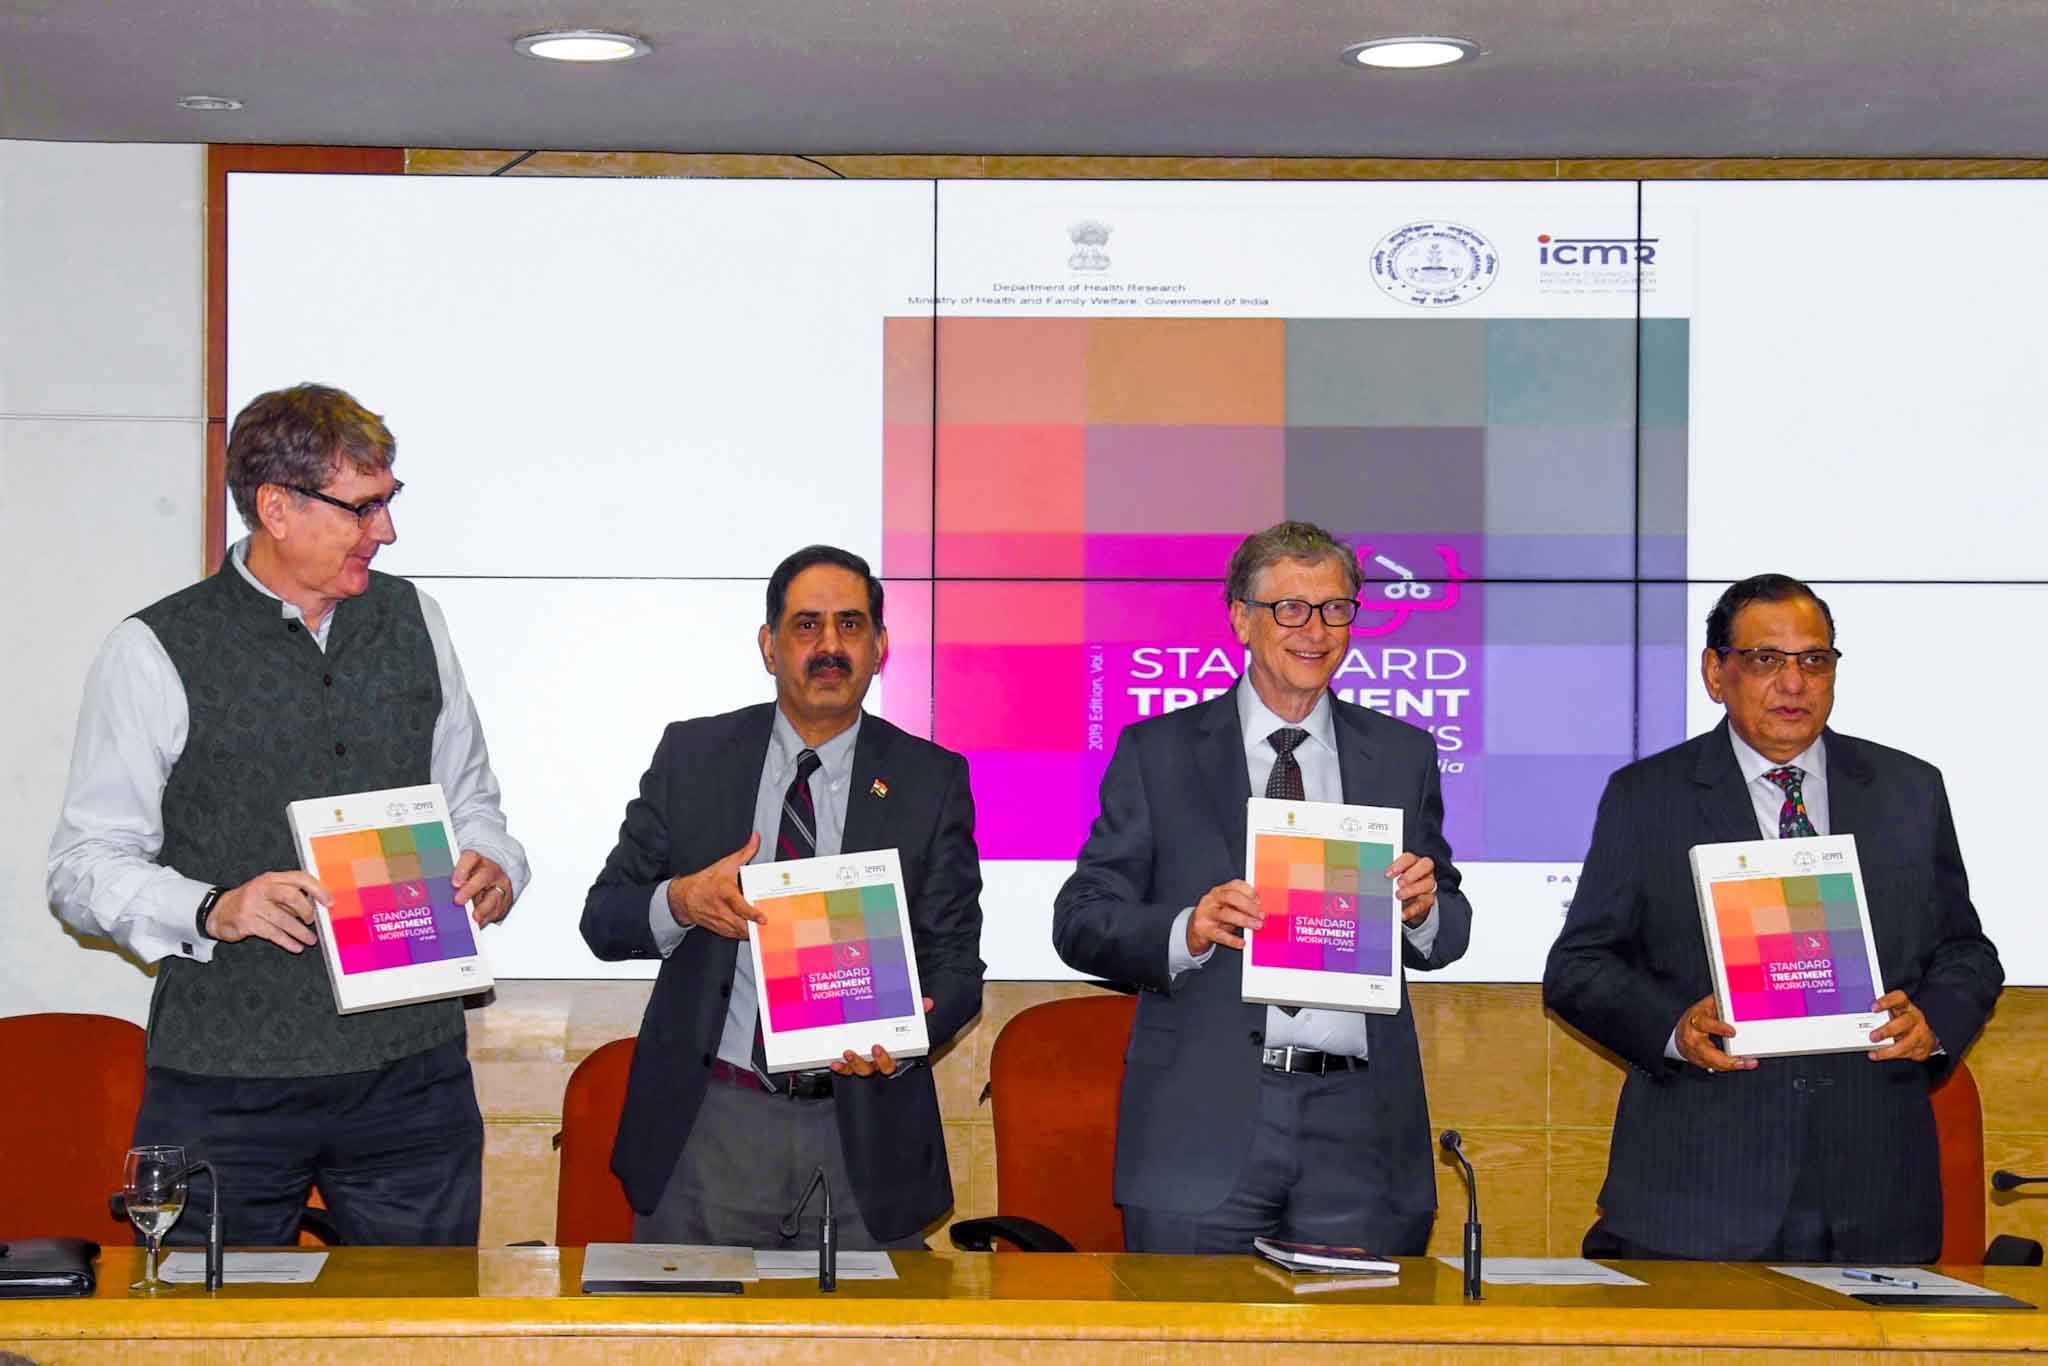 Standard Treatment Workflows of India manual designed by me was launched in ICMR on November 17, 2019 by Mr. Bill Gates, Mr. Henk Bekedam and Dr. Balram Bhargava